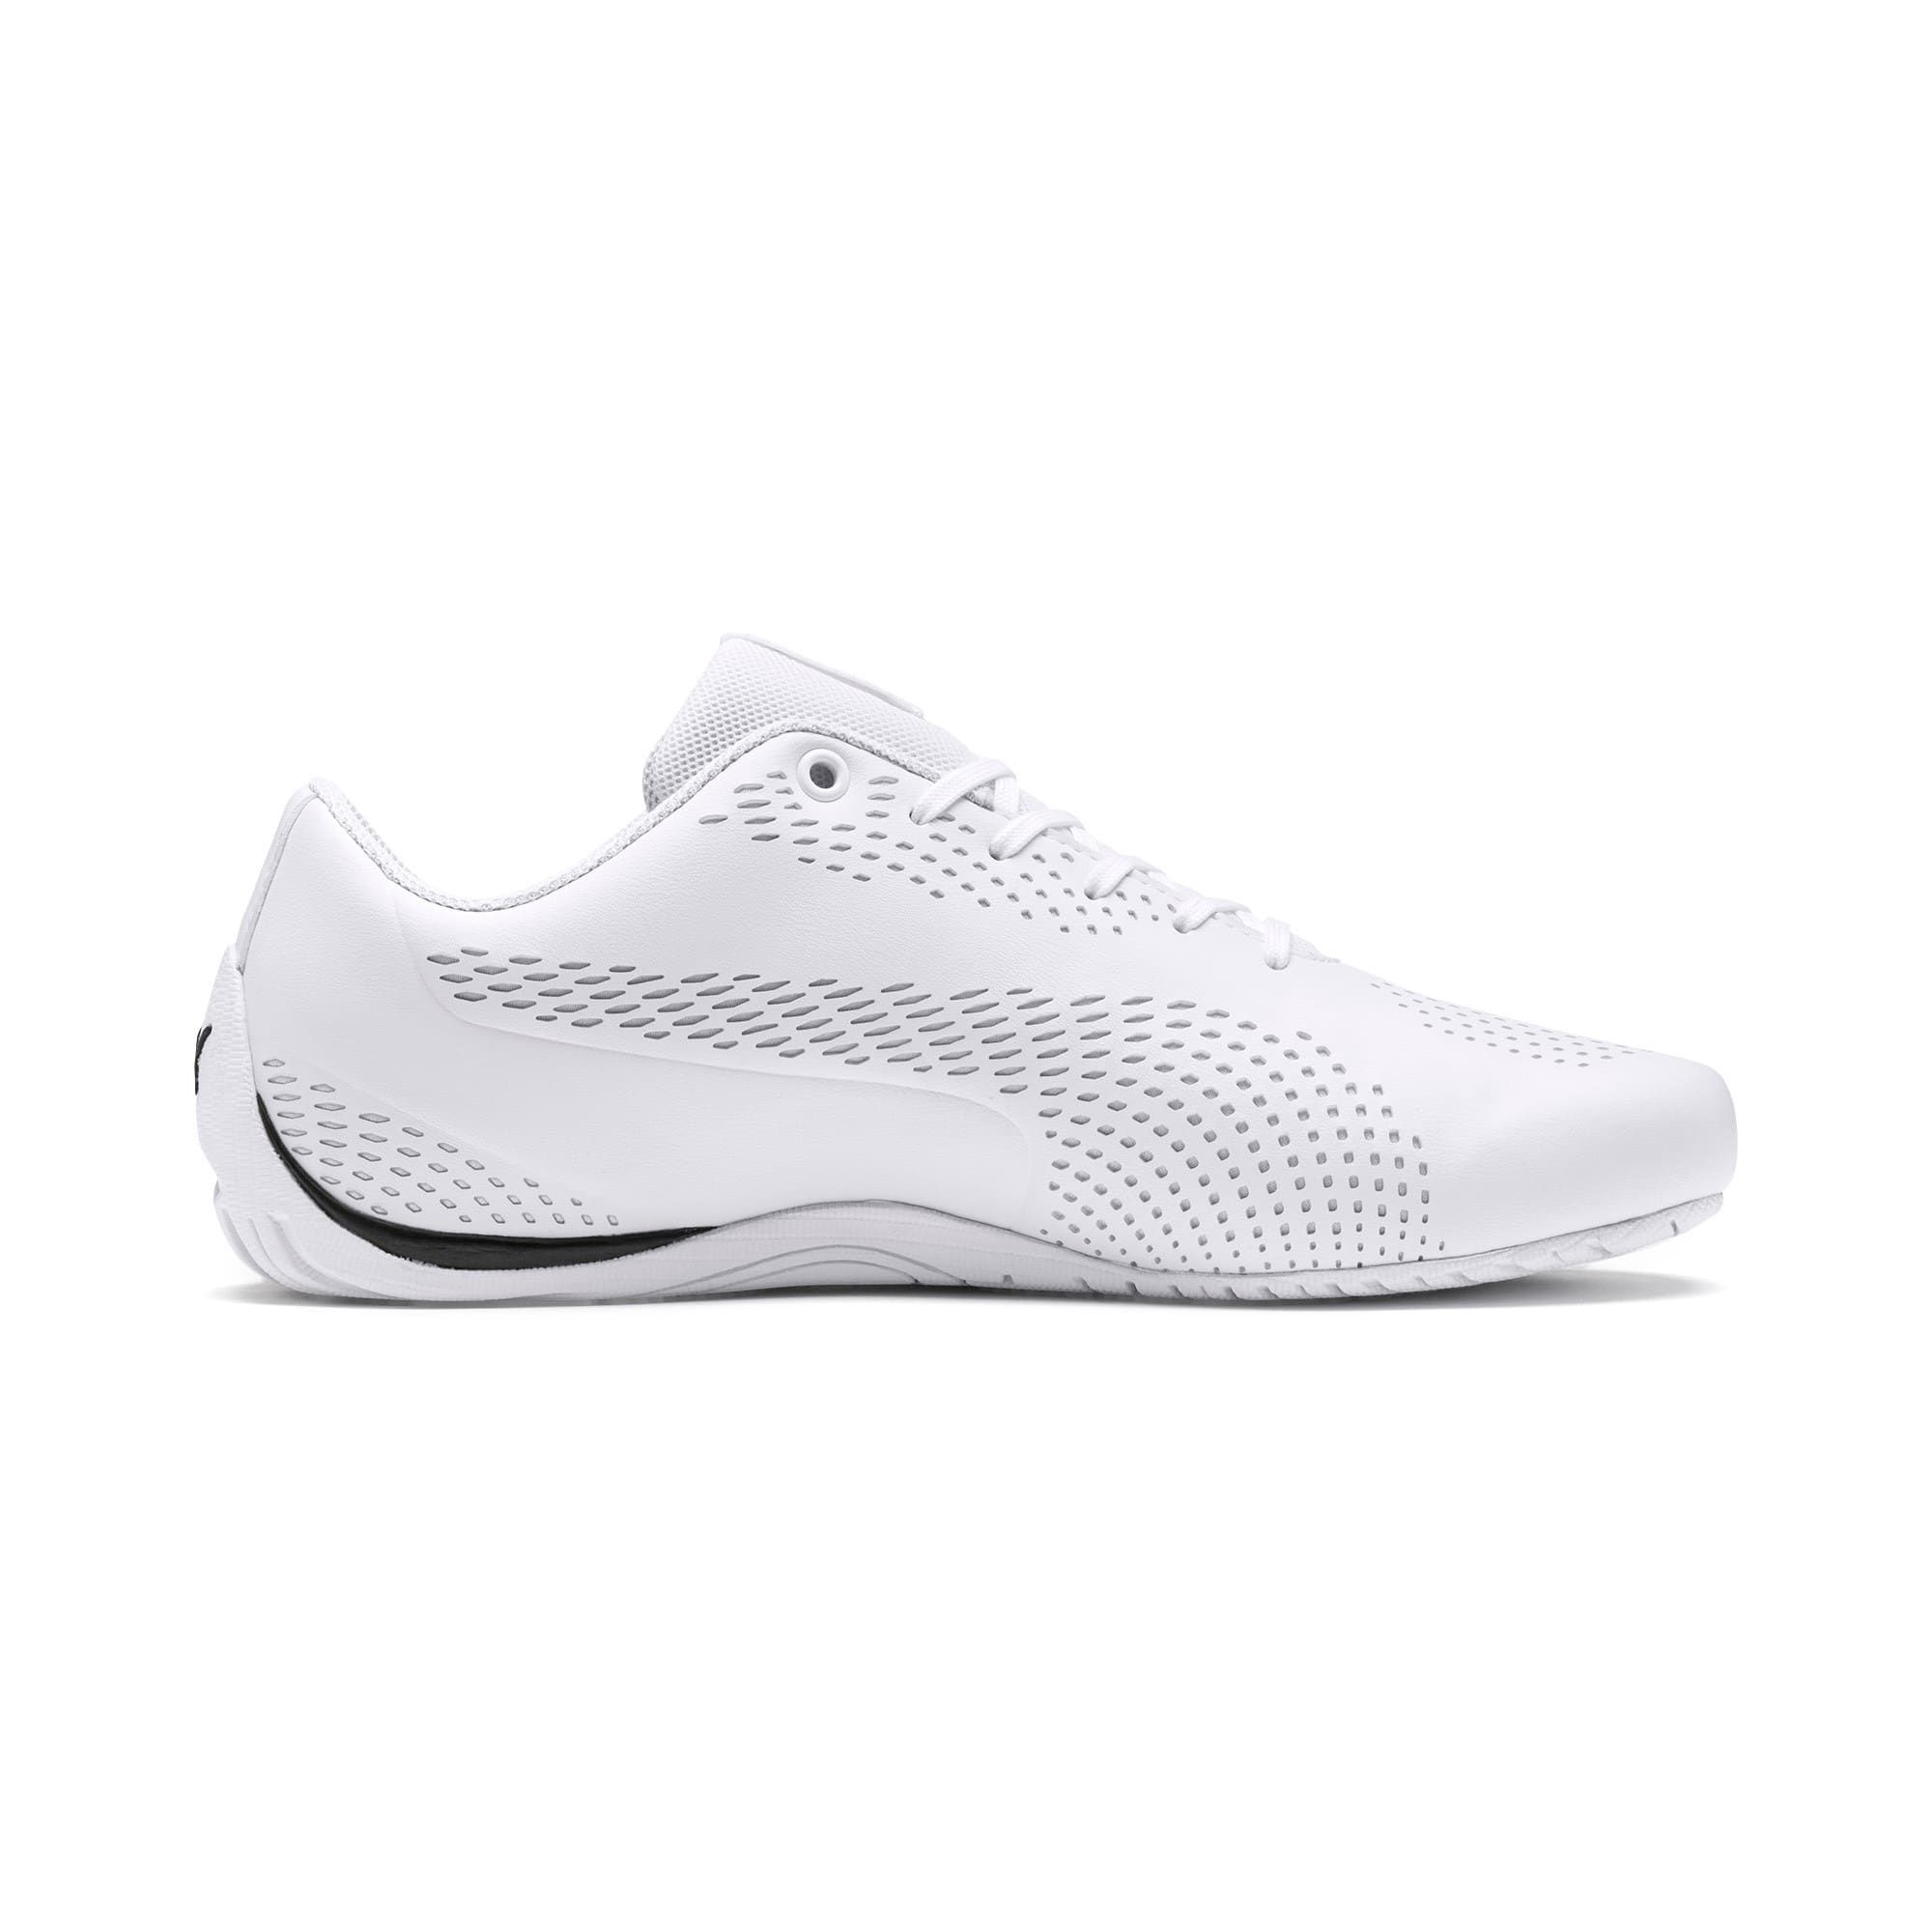 PUMA Ferrari Drift Cat 5 Ultra II Trainers, White/Black, size 6, Clothing